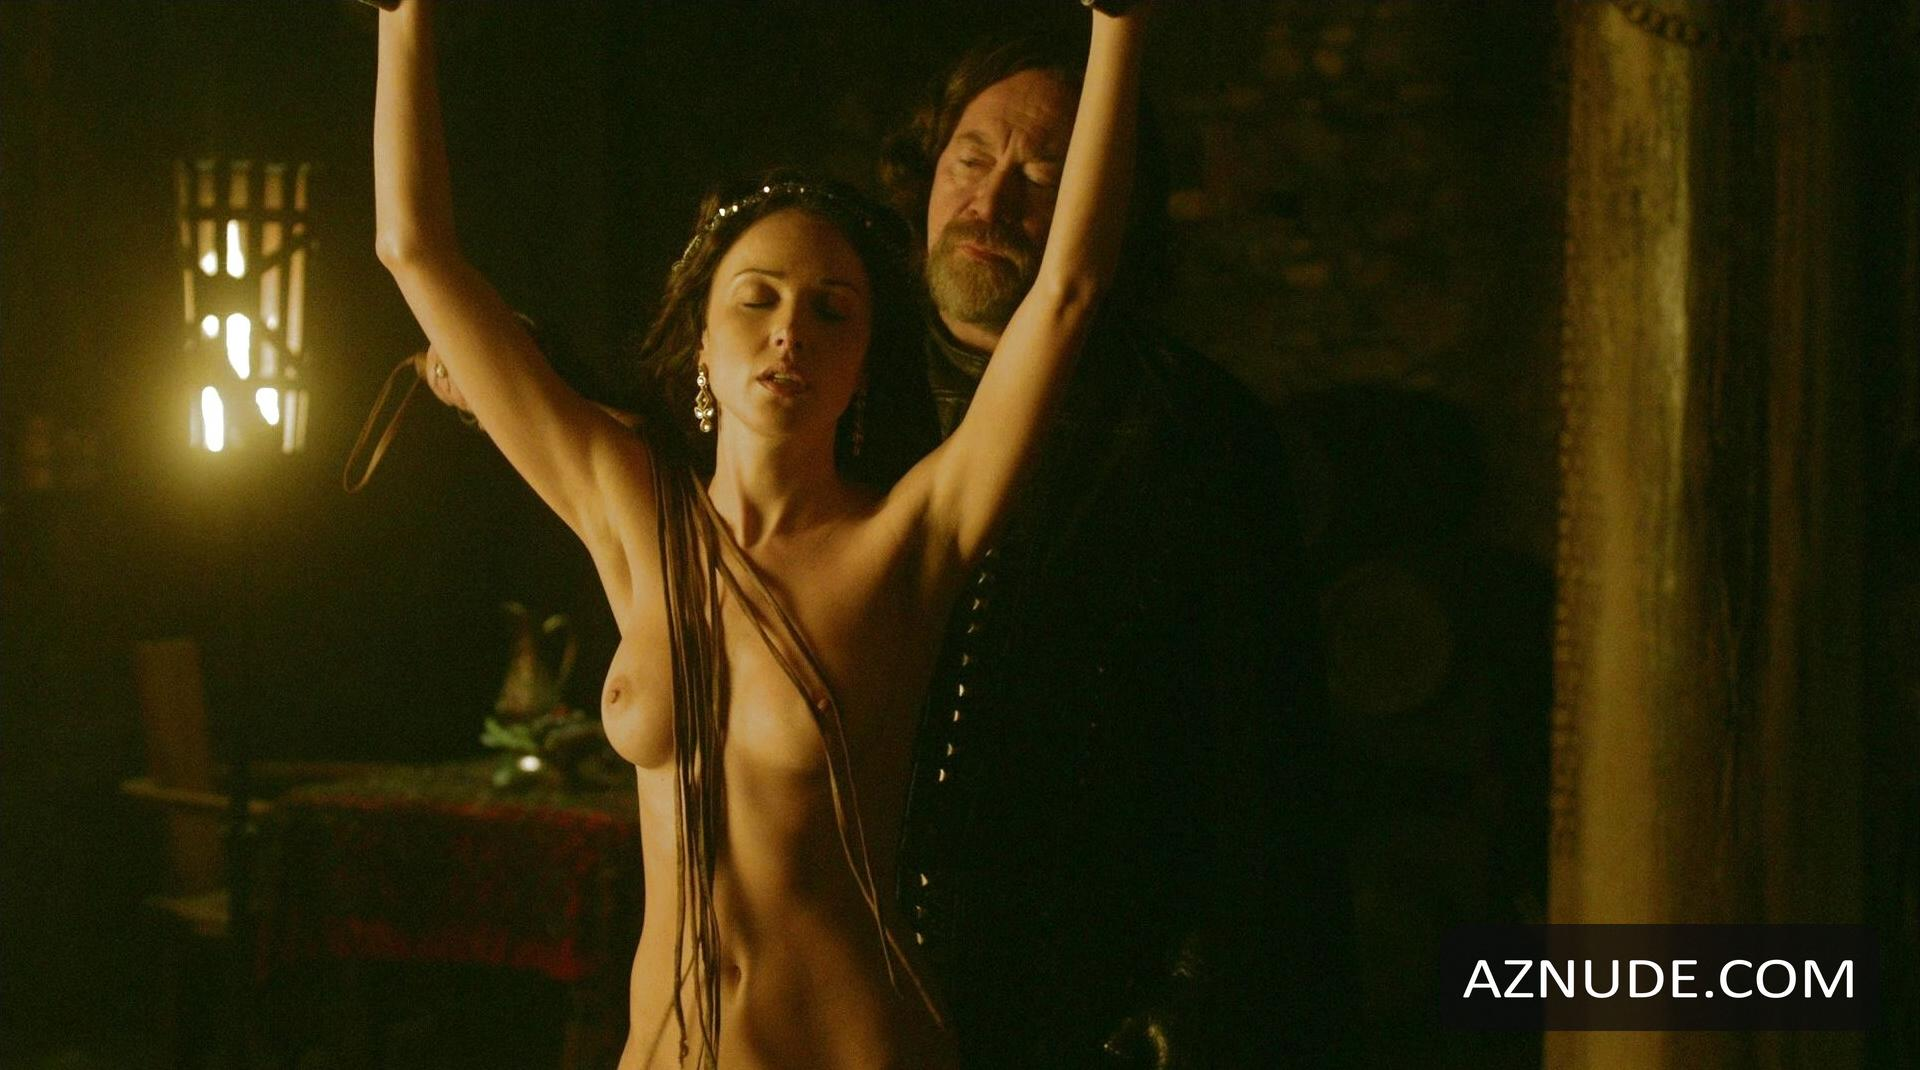 Vikings sex